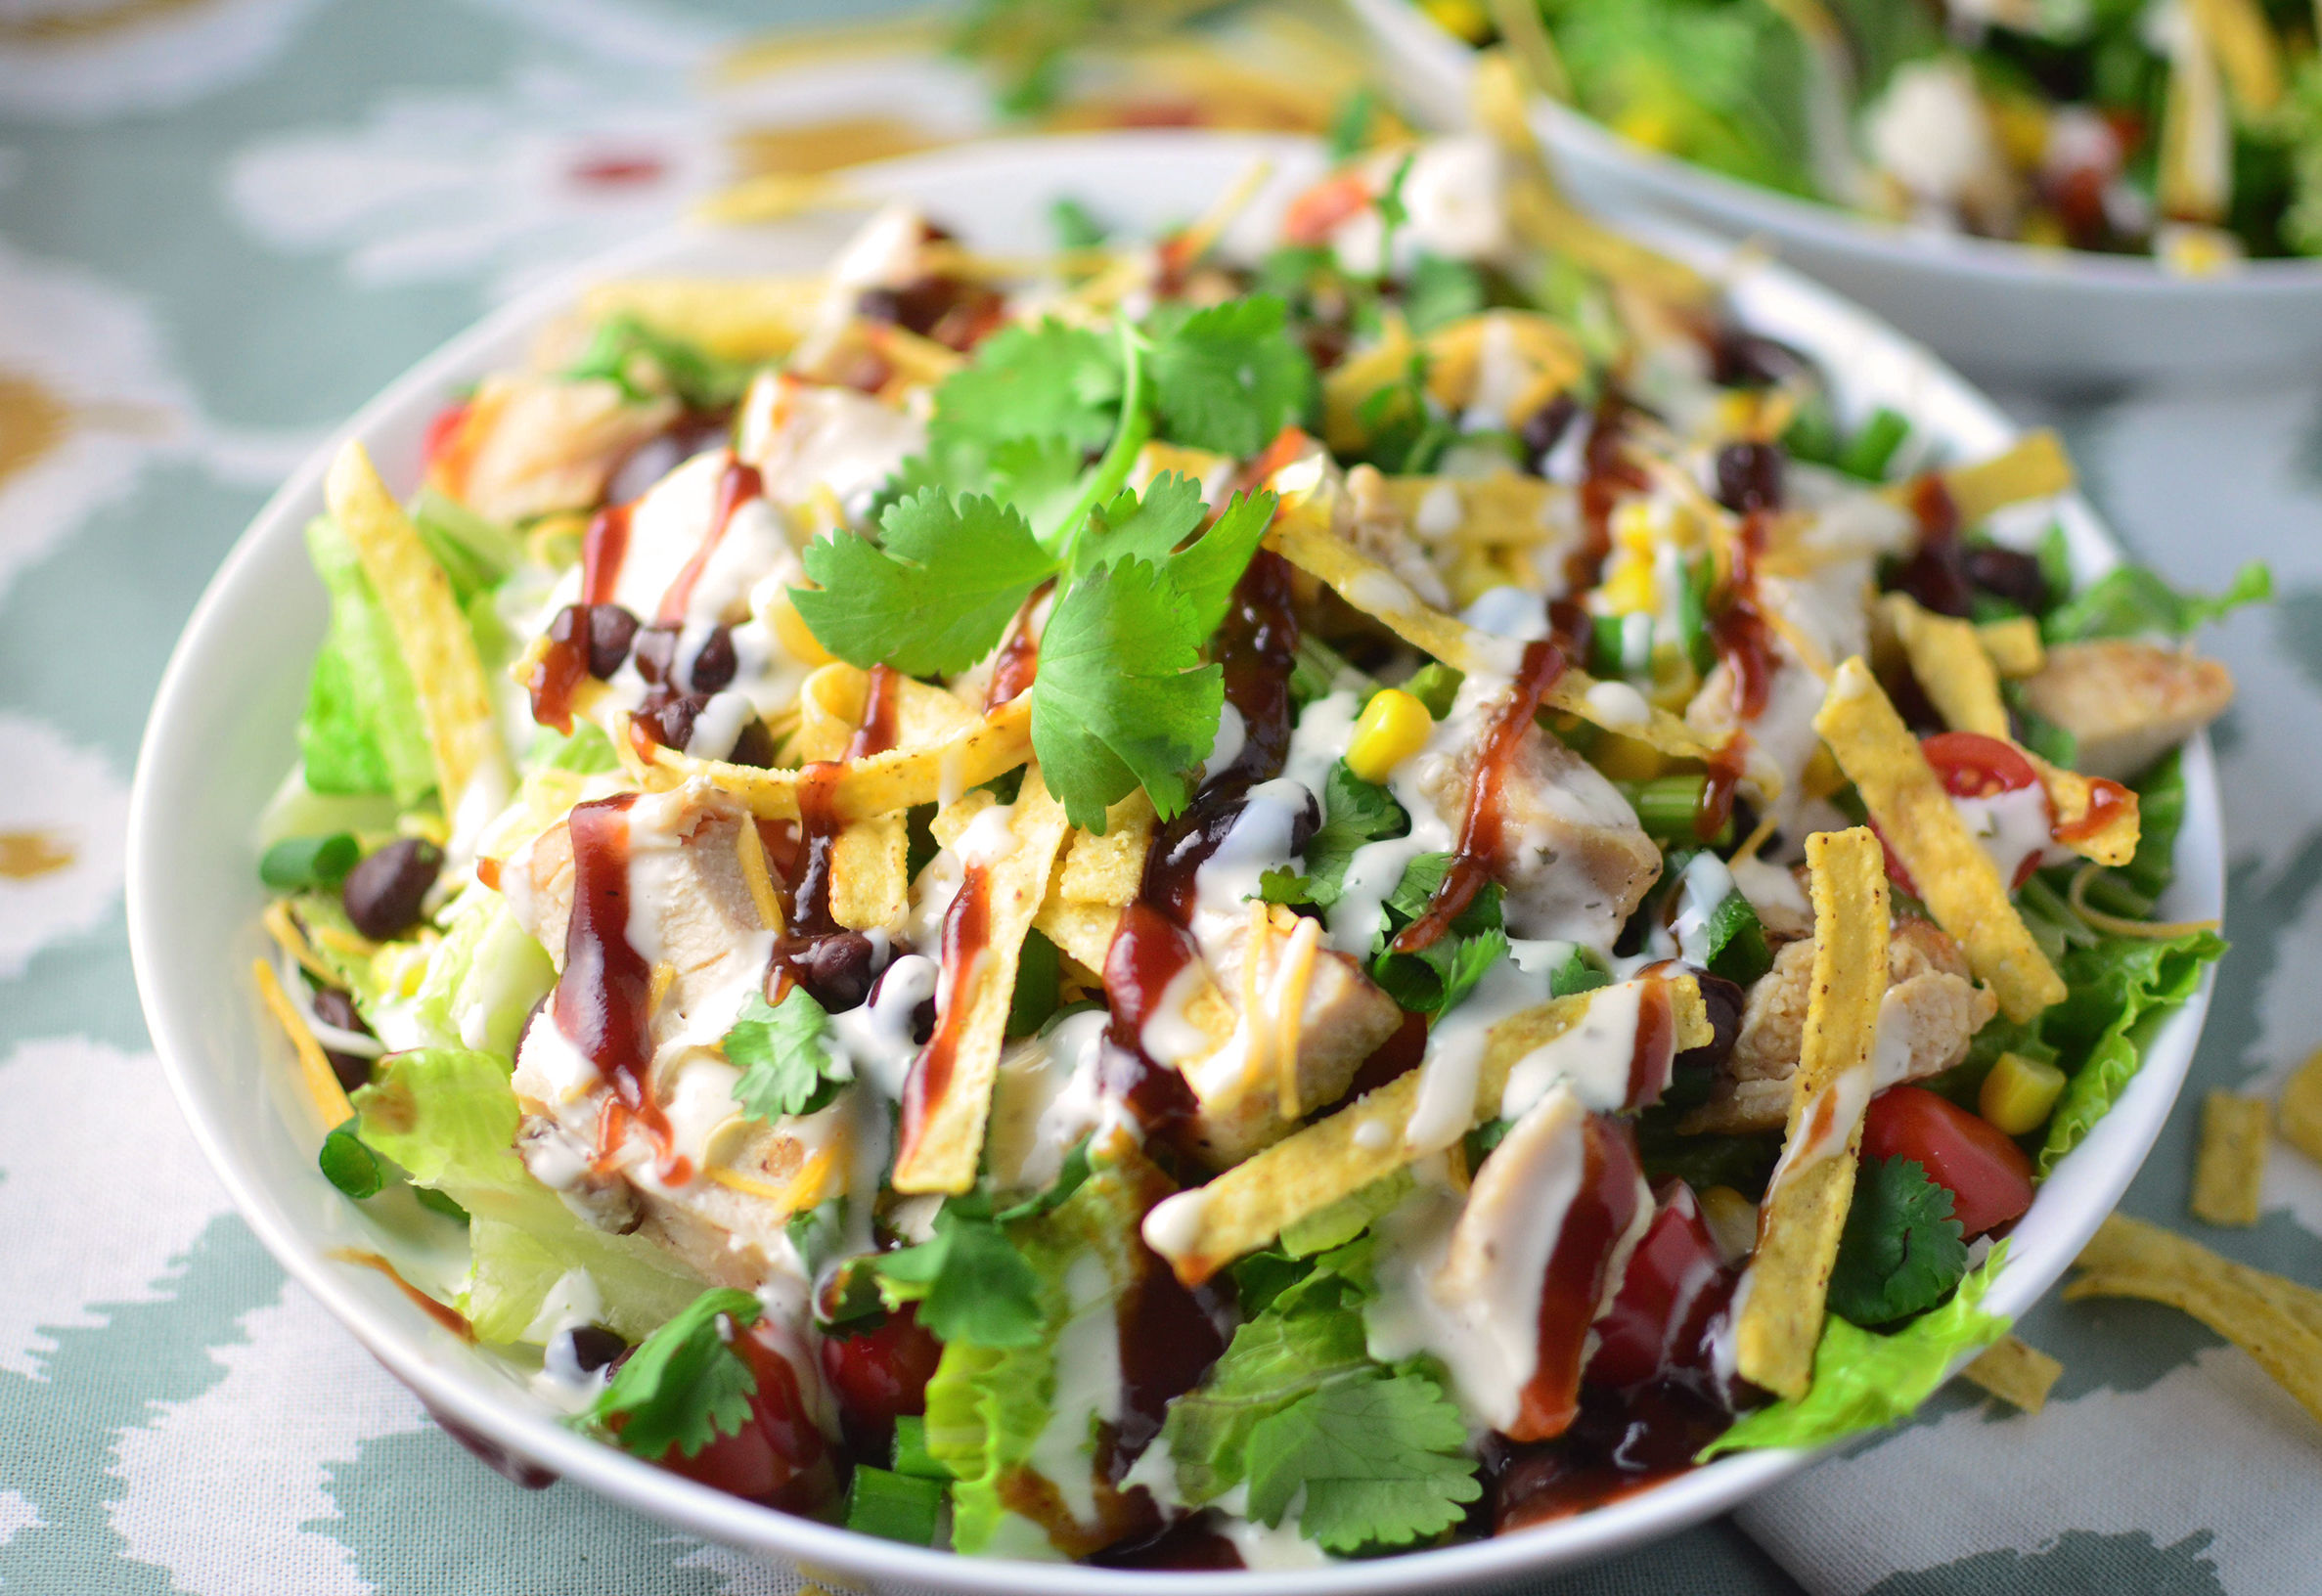 salad bbq chicken go grilled ranch sweet strips dressing savory simple simplesweetsavory wide save print